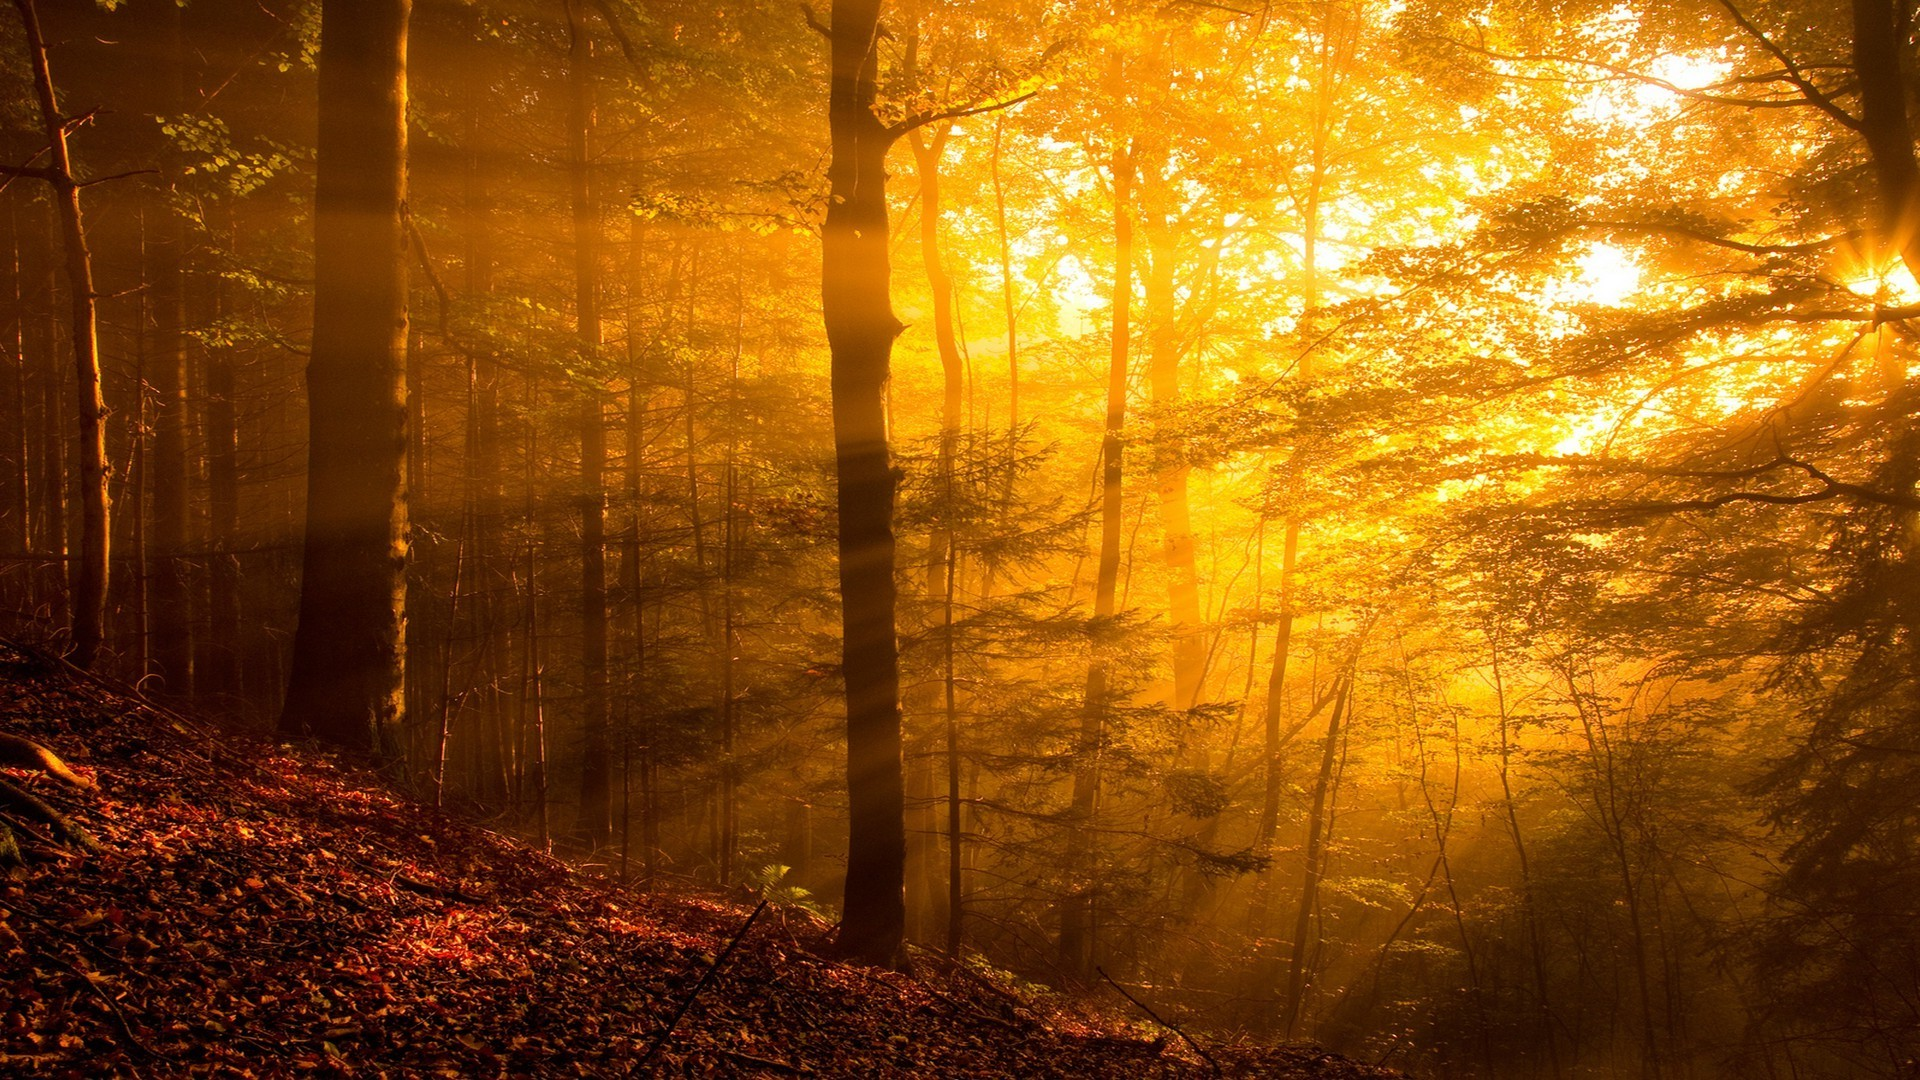 Fall Wallpaper 1600x900 Nature Trees Forest Sun Rays Leaves Branch Plants